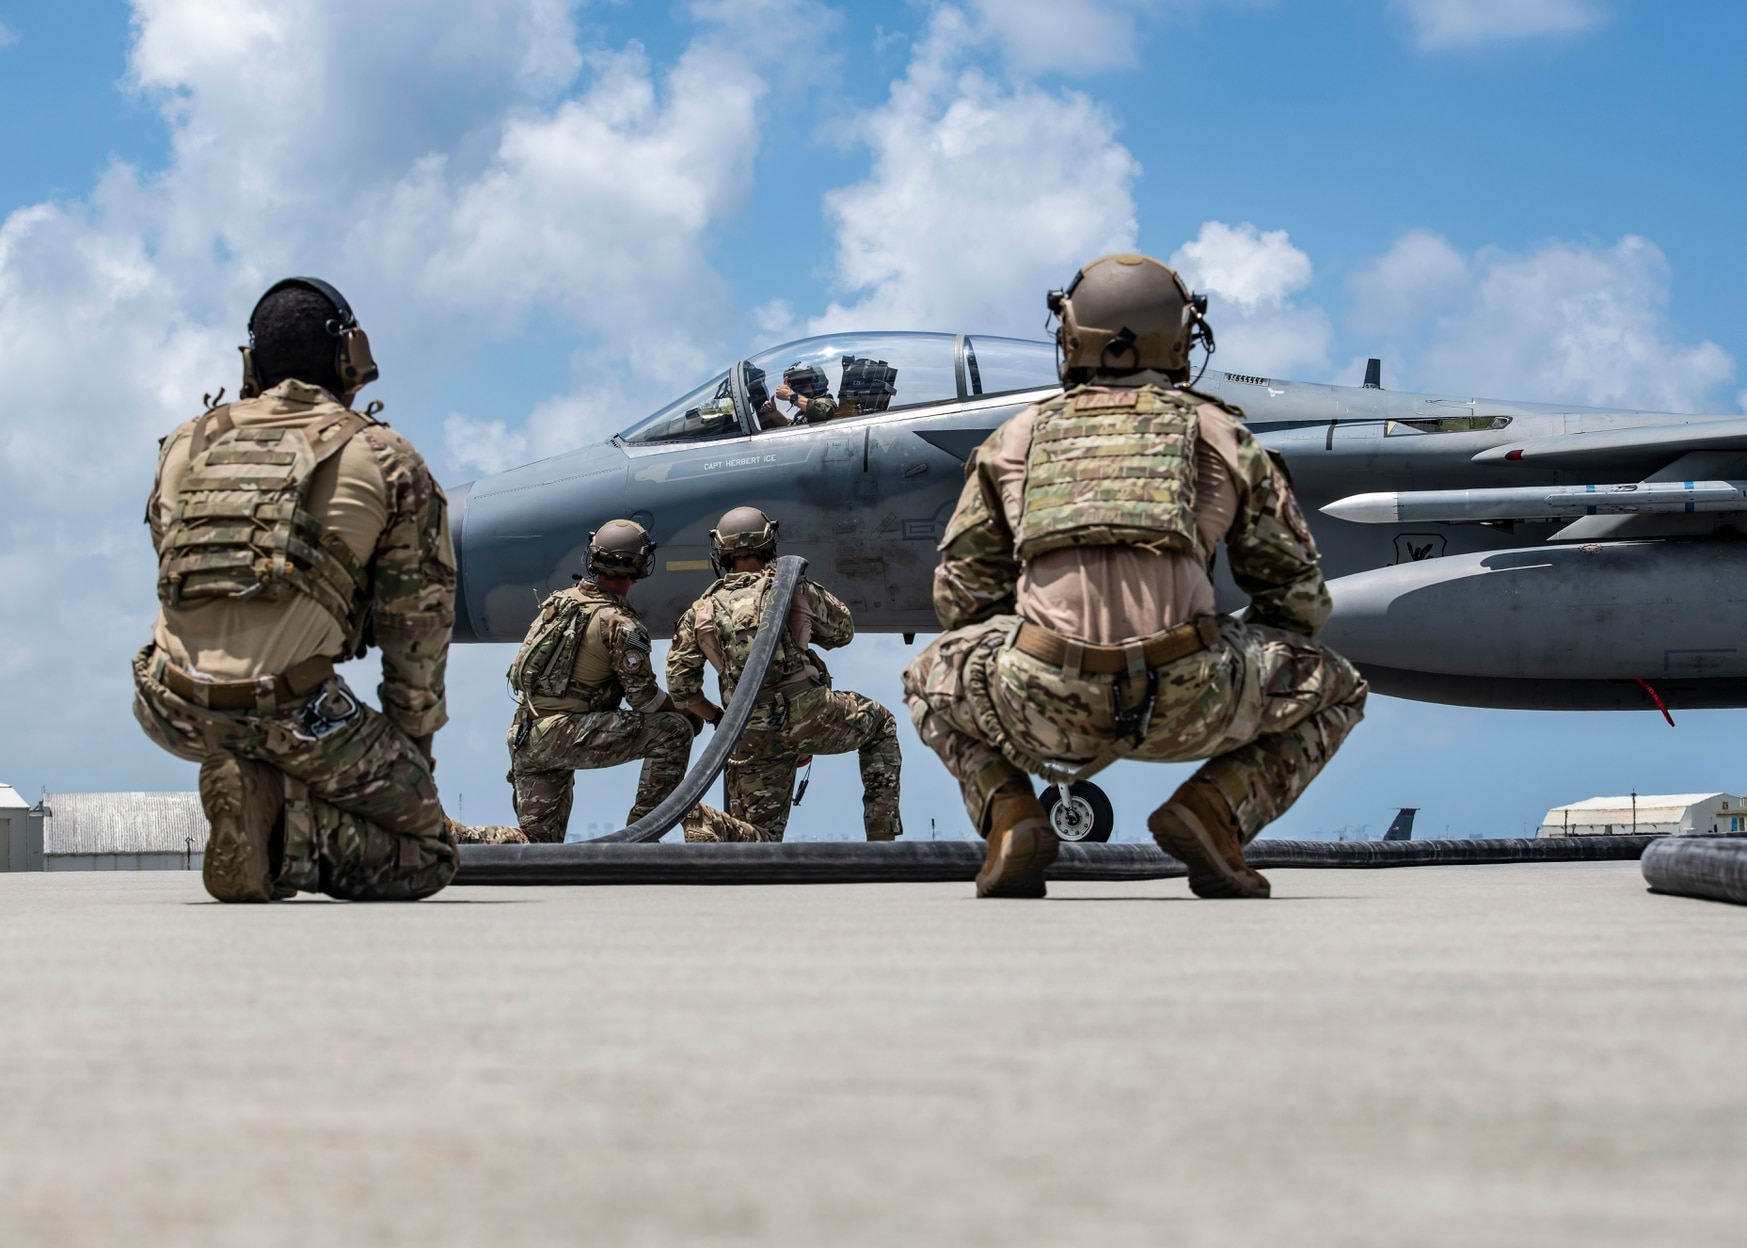 Airmen from the 353rd Special Operations Group prepare to refuel a U.S. Air Force F-15 Eagle during Exercise Westpac Rumrunner on July 31, 2020, at Kadena Air Base, Japan. The exercise was dedicated to implementing agile combat employment concepts. (Tech. Sgt. Micaiah Anthony/U.S. Air Force)